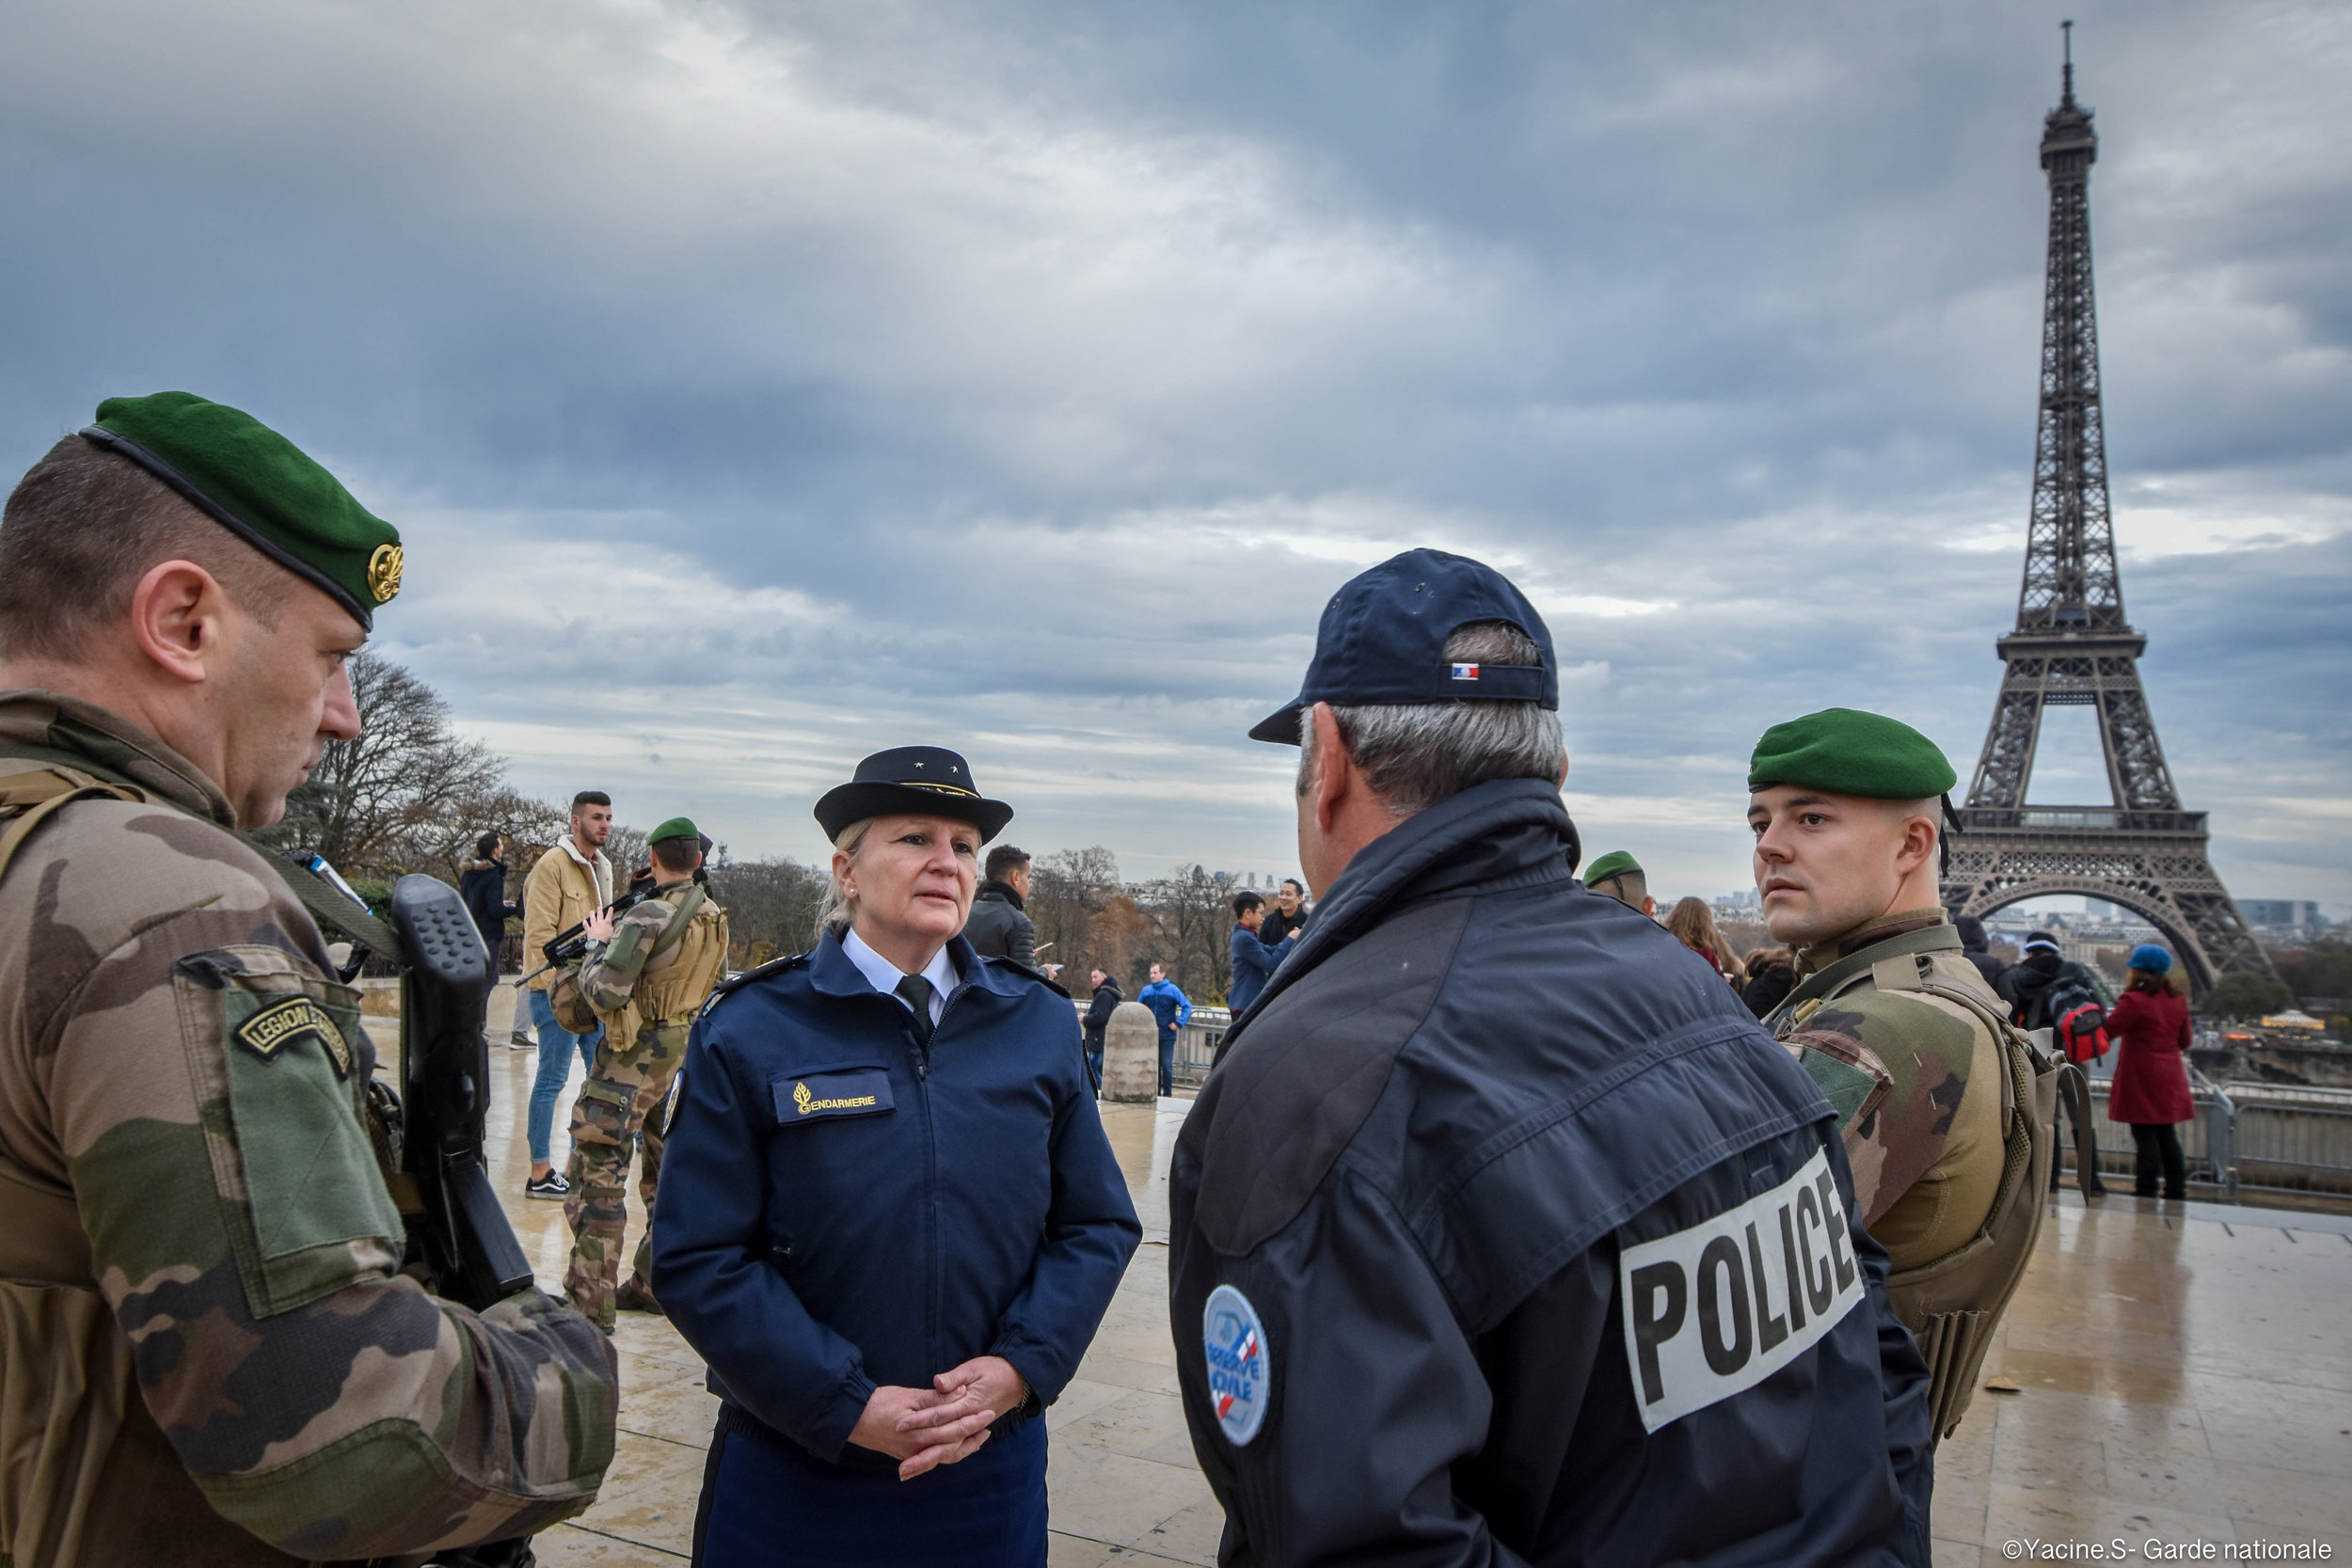 Brigadier Anne Fougerat meets in Paris with a police reservist and two 2nd Engineer Foreign Legion reservists deployed in the Opération Sentinelle to protect sensitive points in France. Photo credit: Garde Nationale